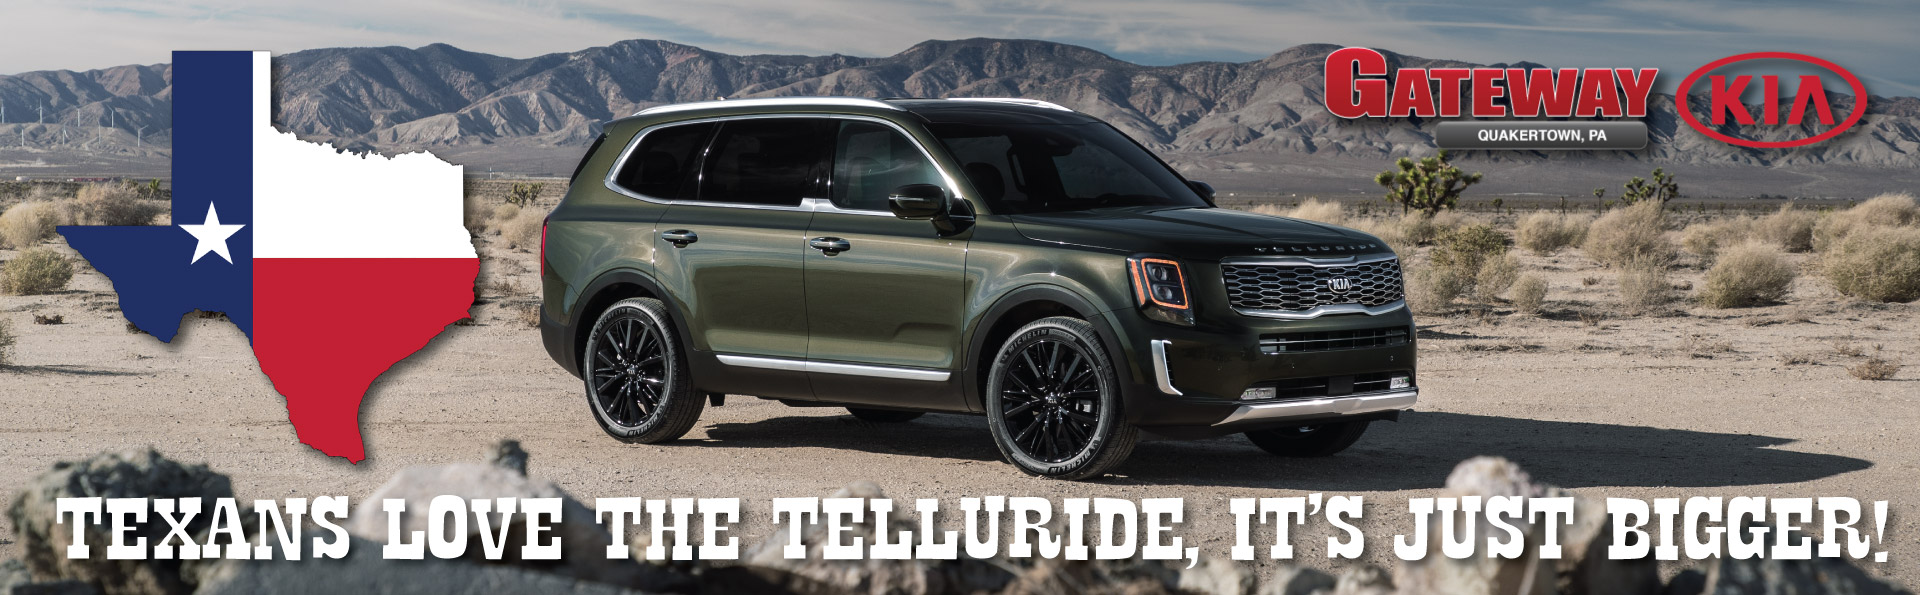 2020 kia telluride wins texas gateway quakertown pa